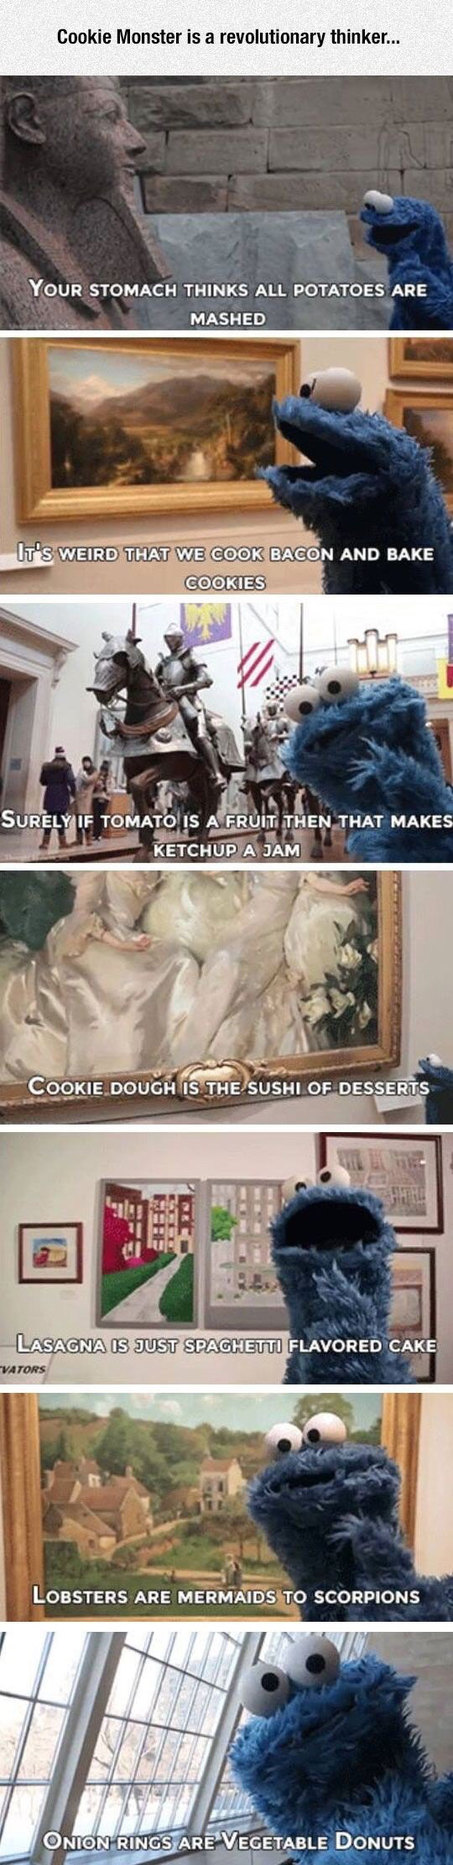 Cookie Monster is going to change the world - meme